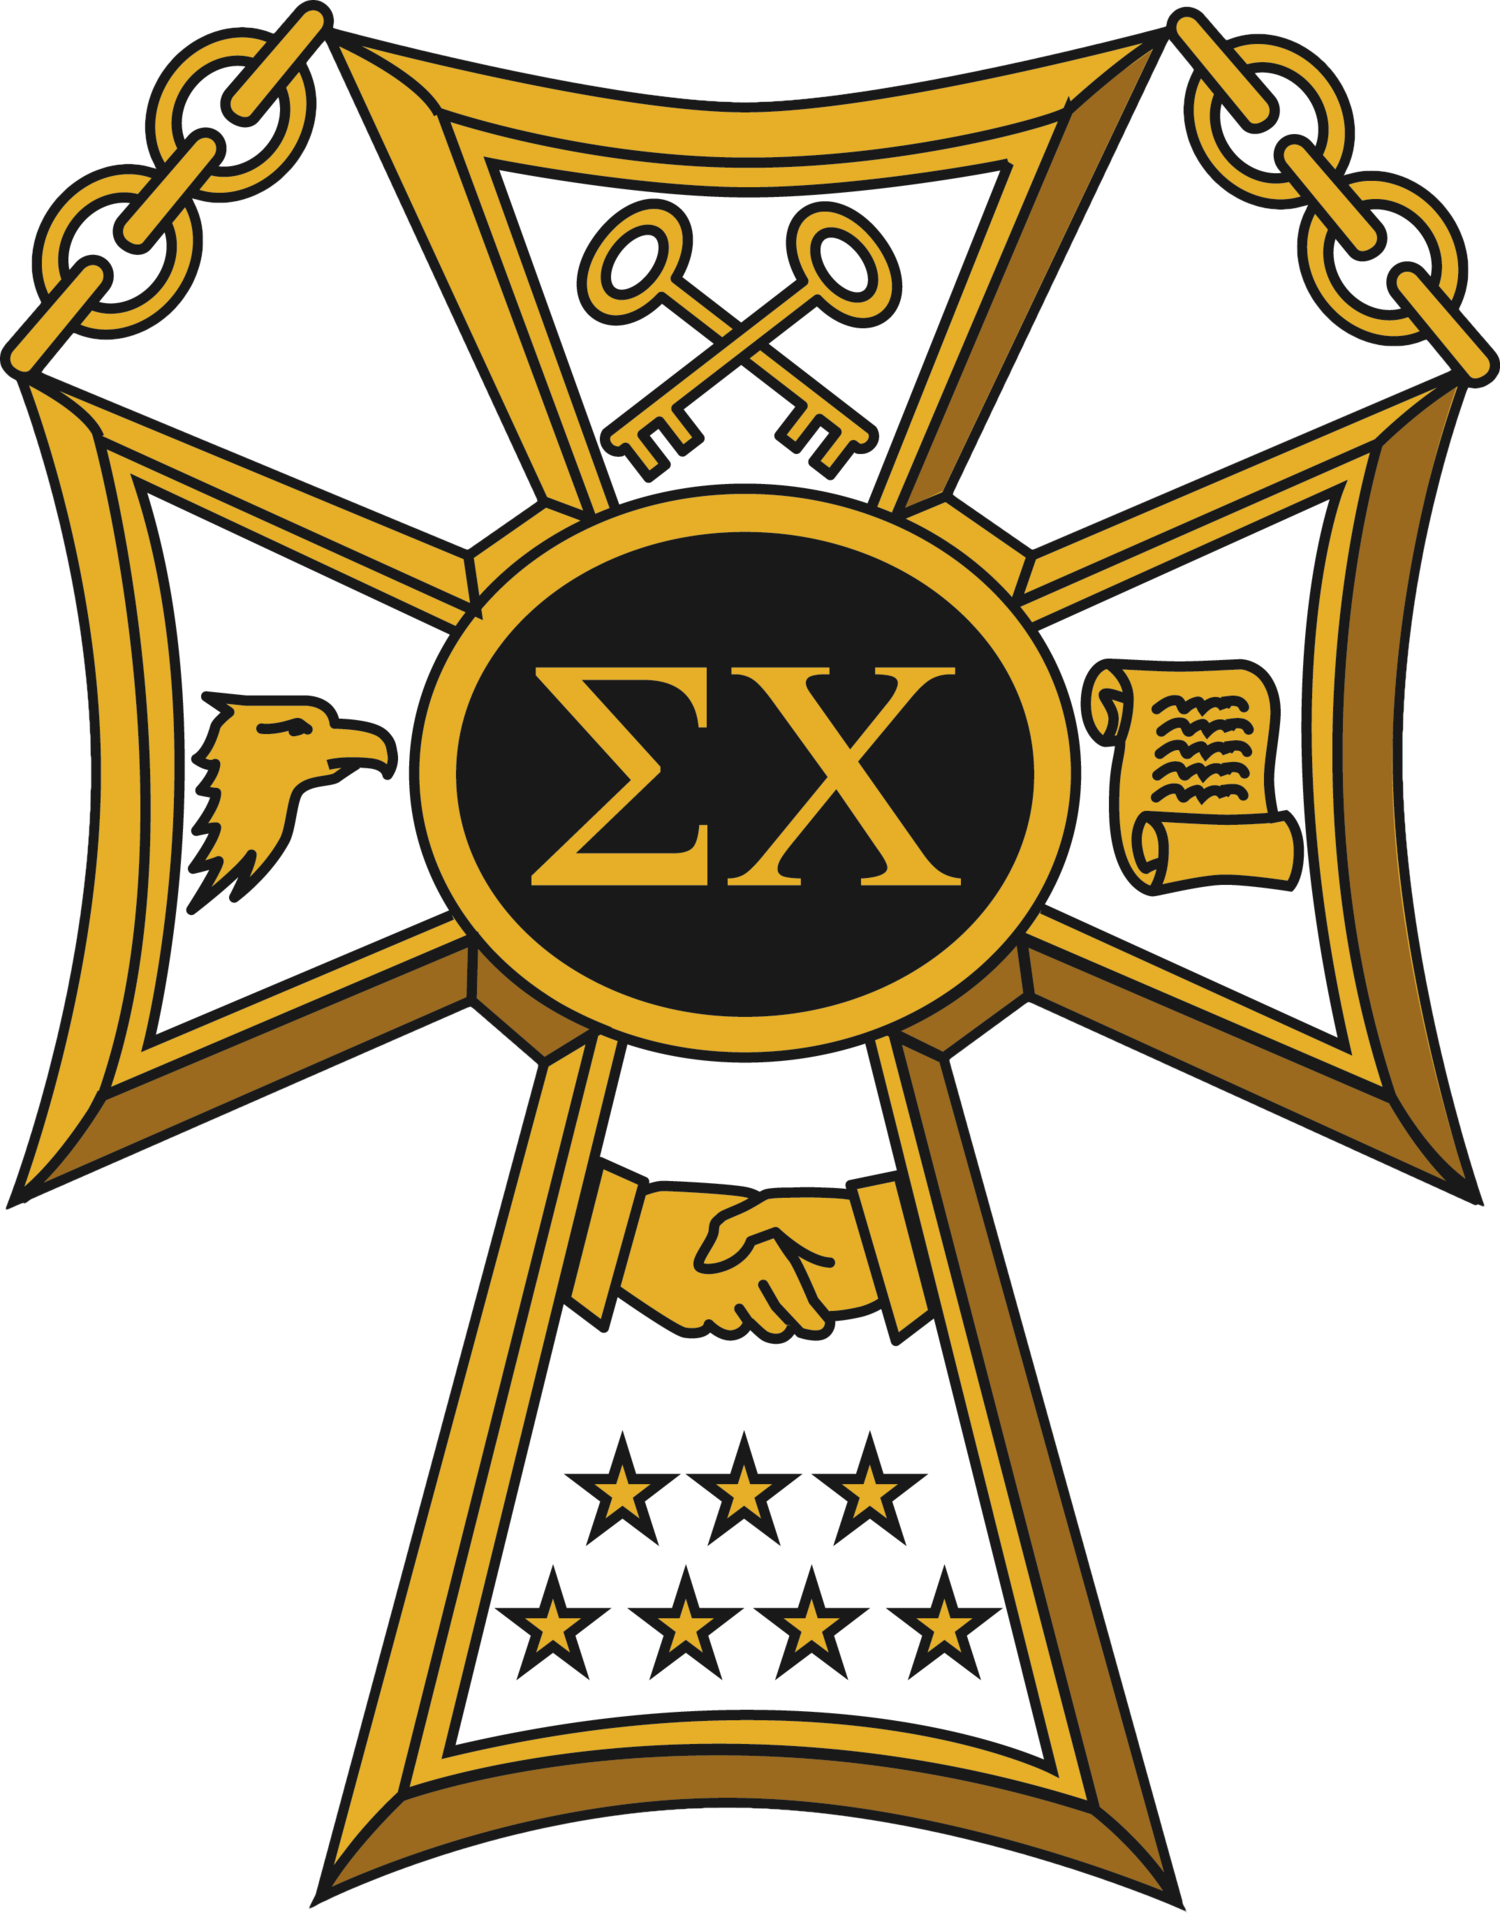 Sigma chi letters png. Nashville photo gallery